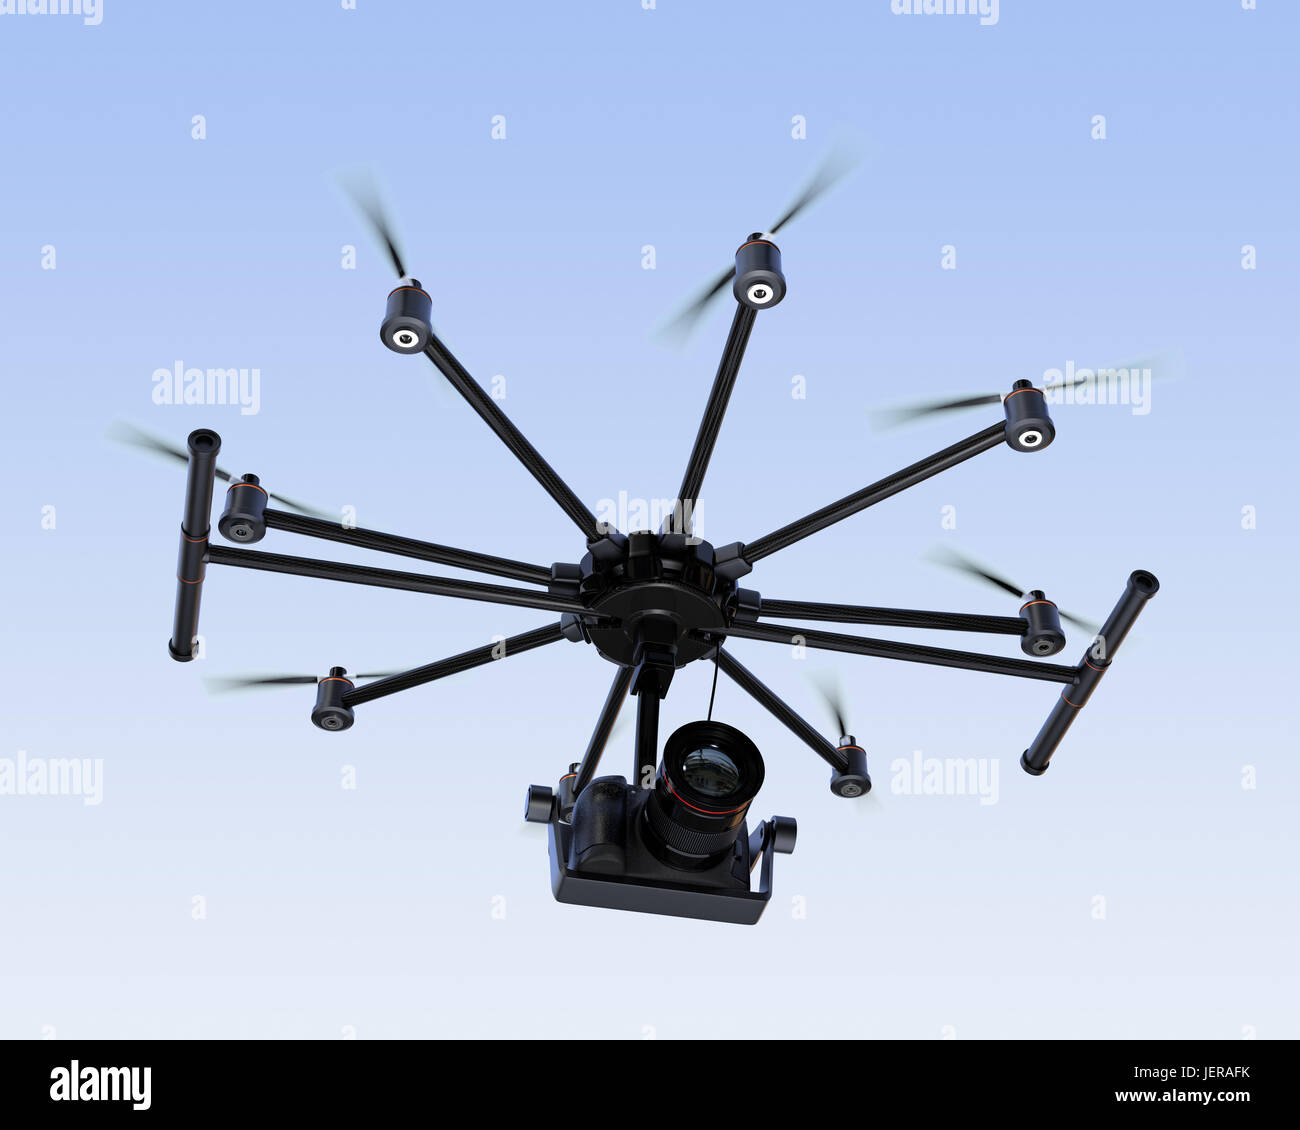 Octocopter flying in the sky. 3D rendering image - Stock Image